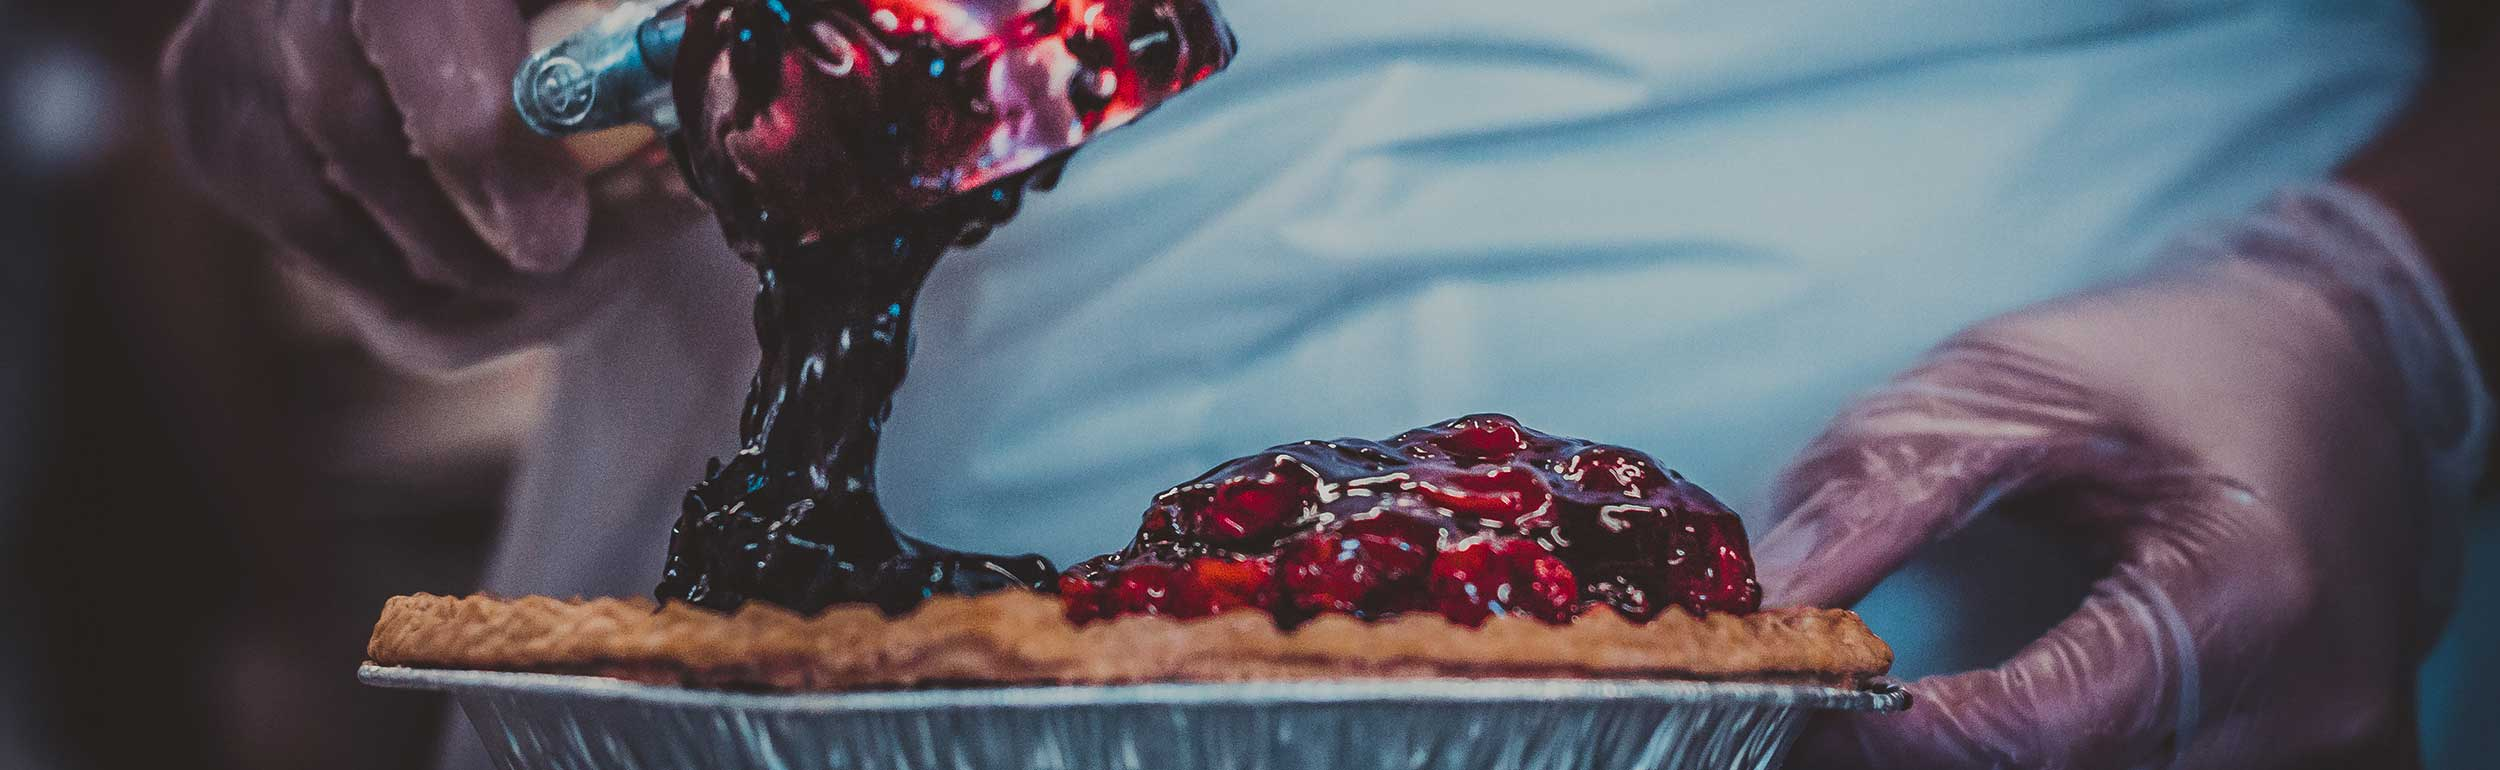 pie scooping cherry filling